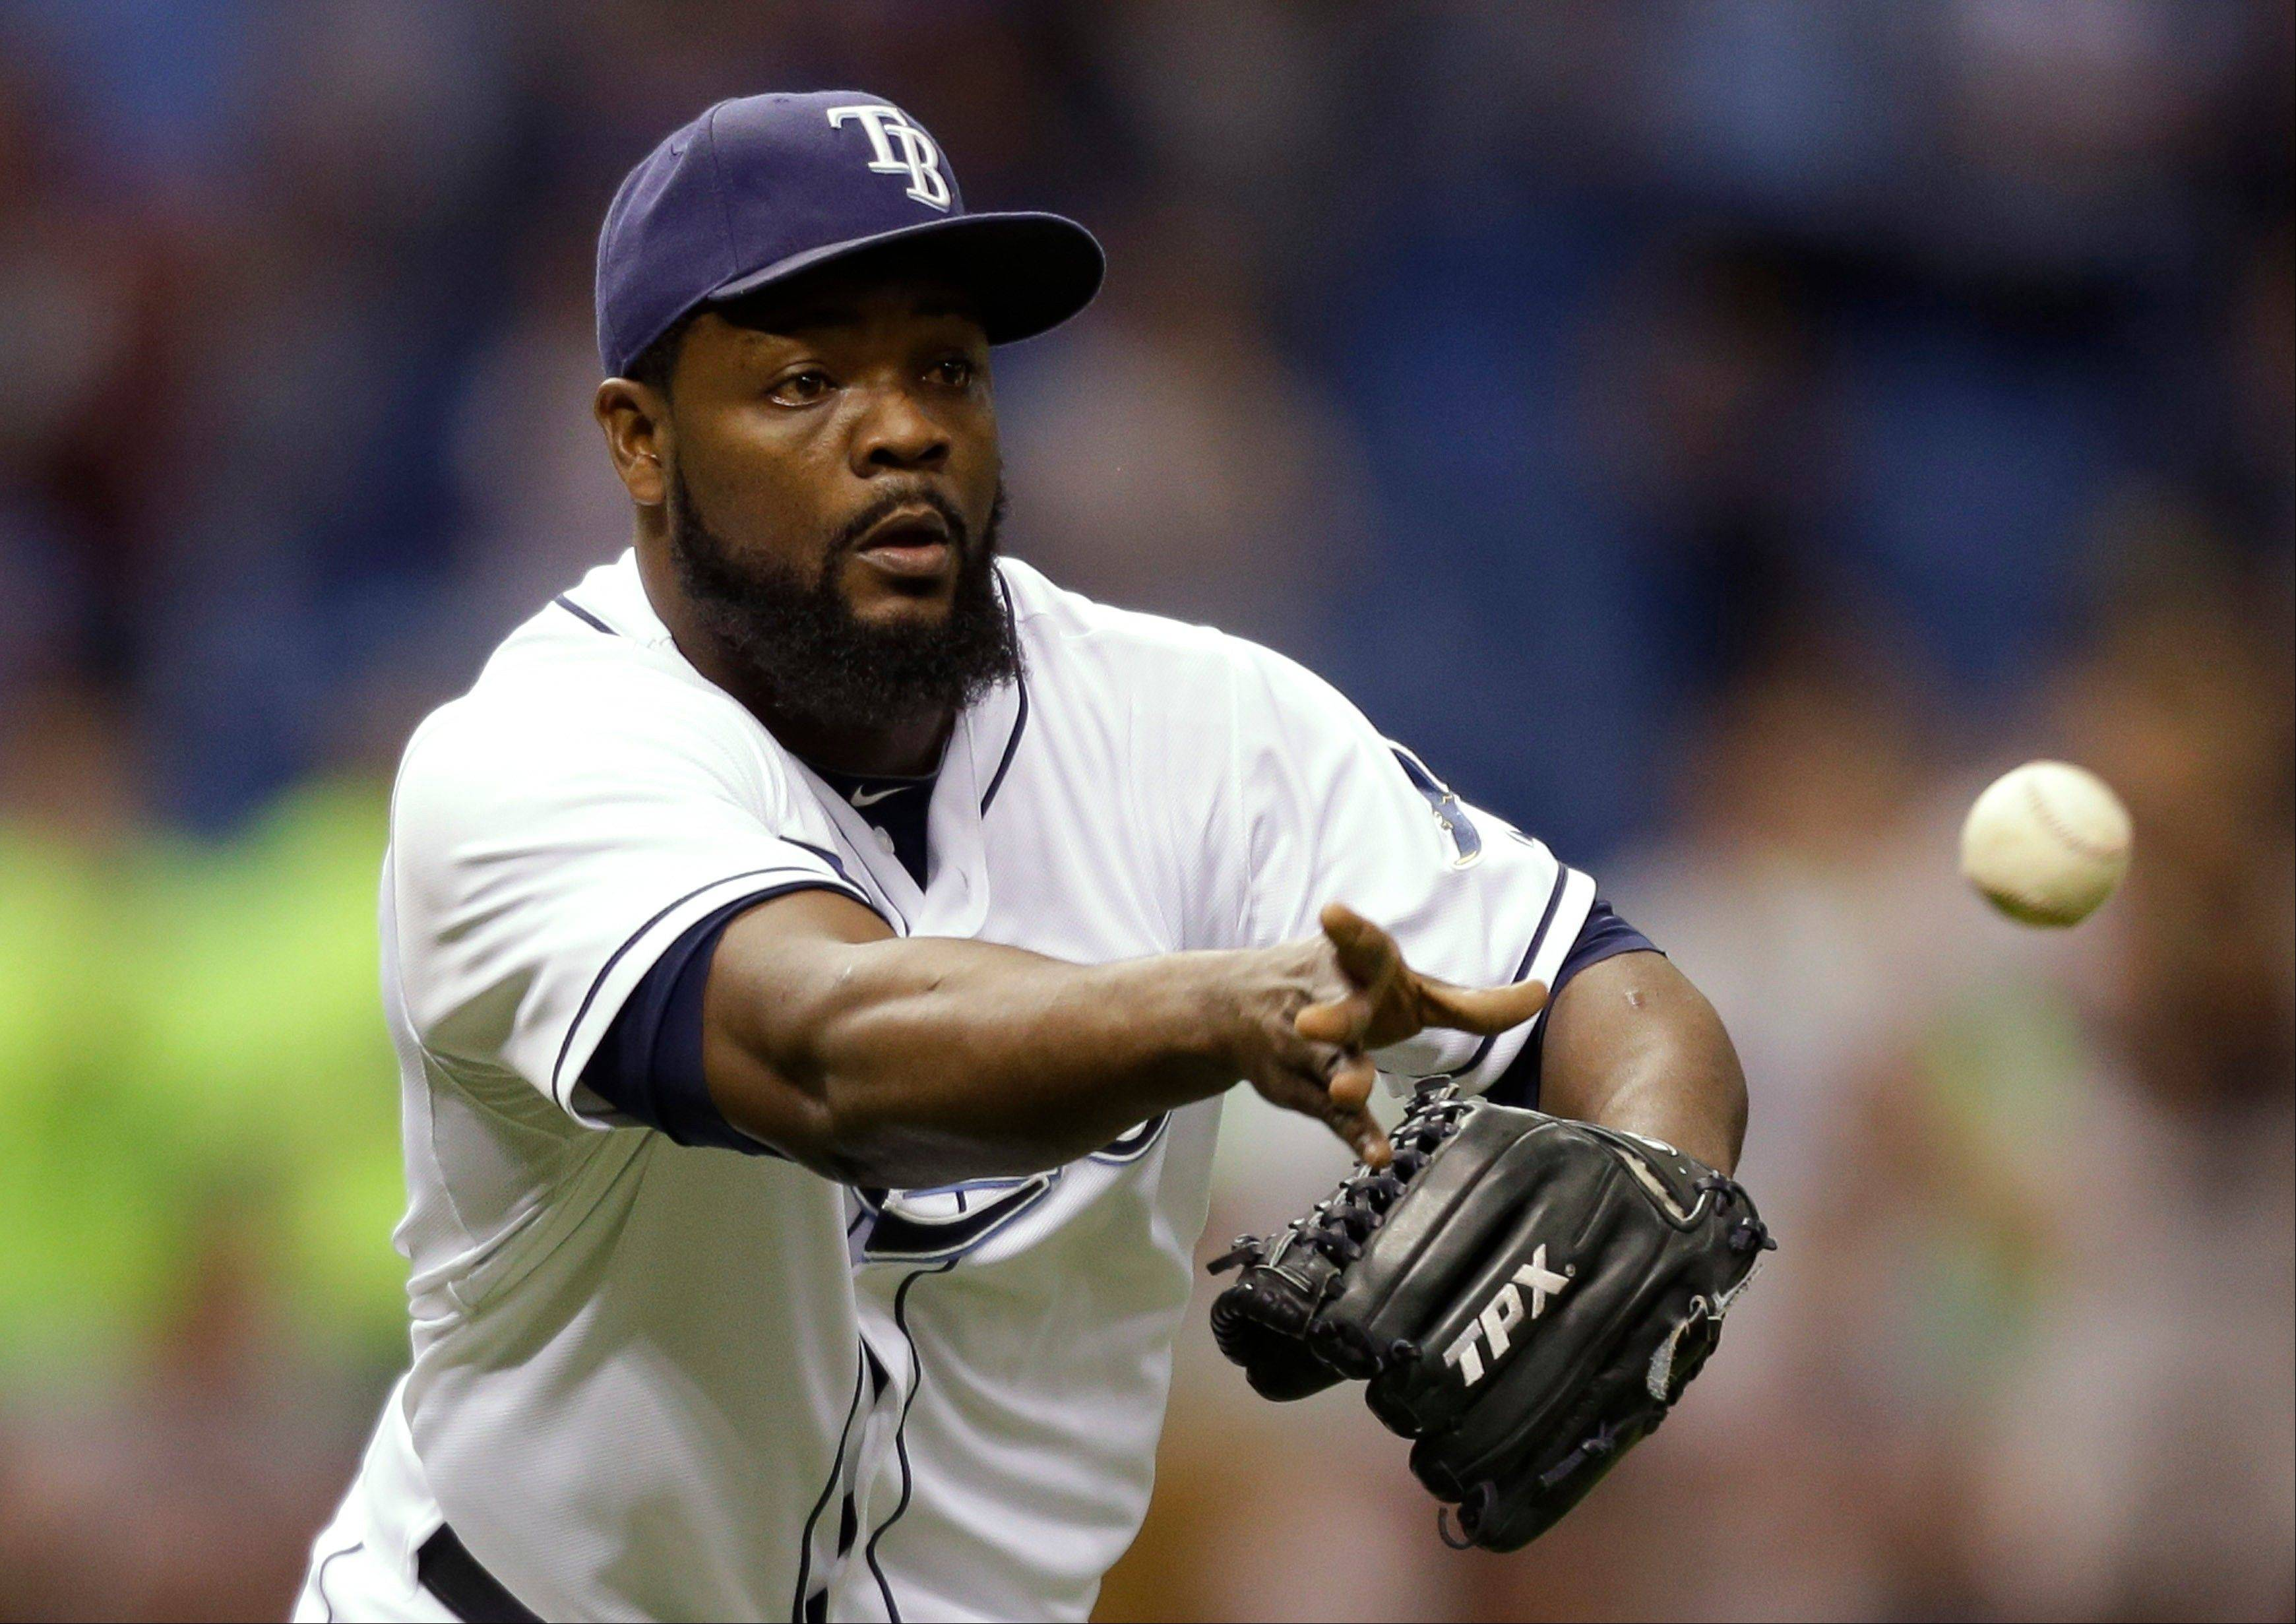 Rays relief pitcher Fernando Rodney flips the ball to first base to get Baltimore�s Endy Chavez and end the game Monday in St. Petersburg, Fla.